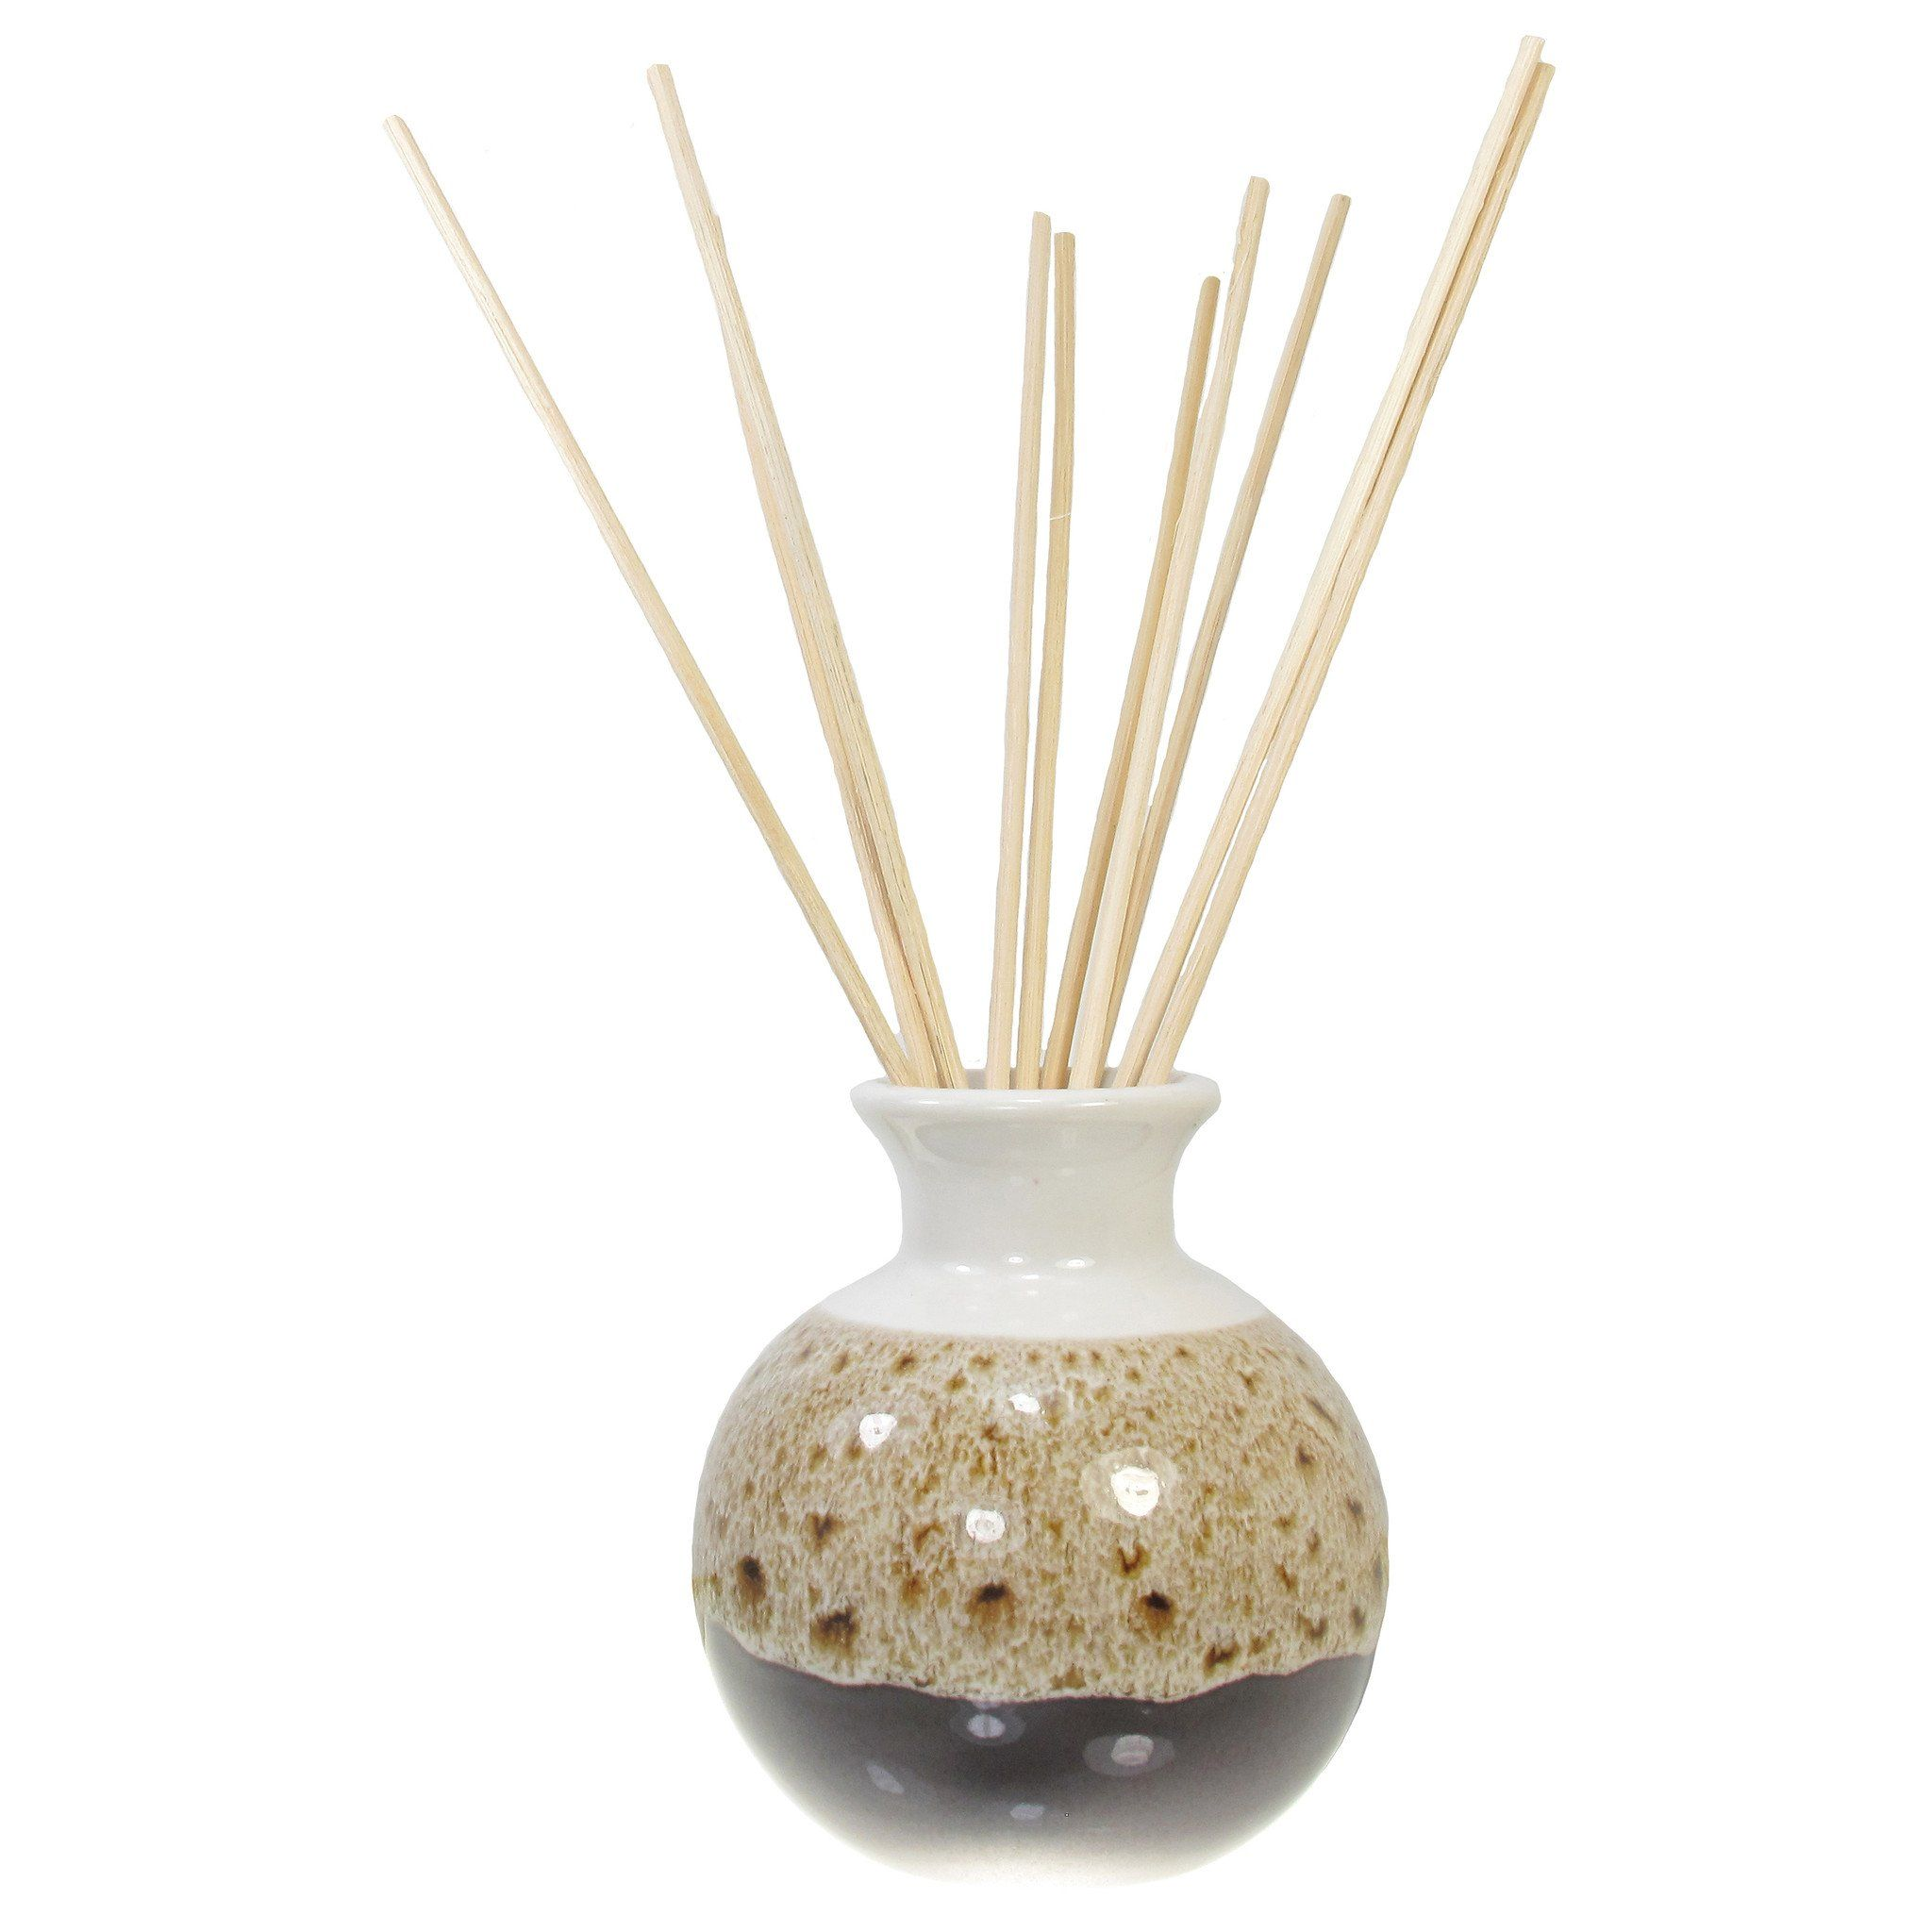 Ceramic Aroma Oil Diffuser Vase, Glazed Finish & 10 Diffuser Rattan Reed Sticks, 10 inches long (each) in 2020 | Aroma oil diffusers, Diffuser ...